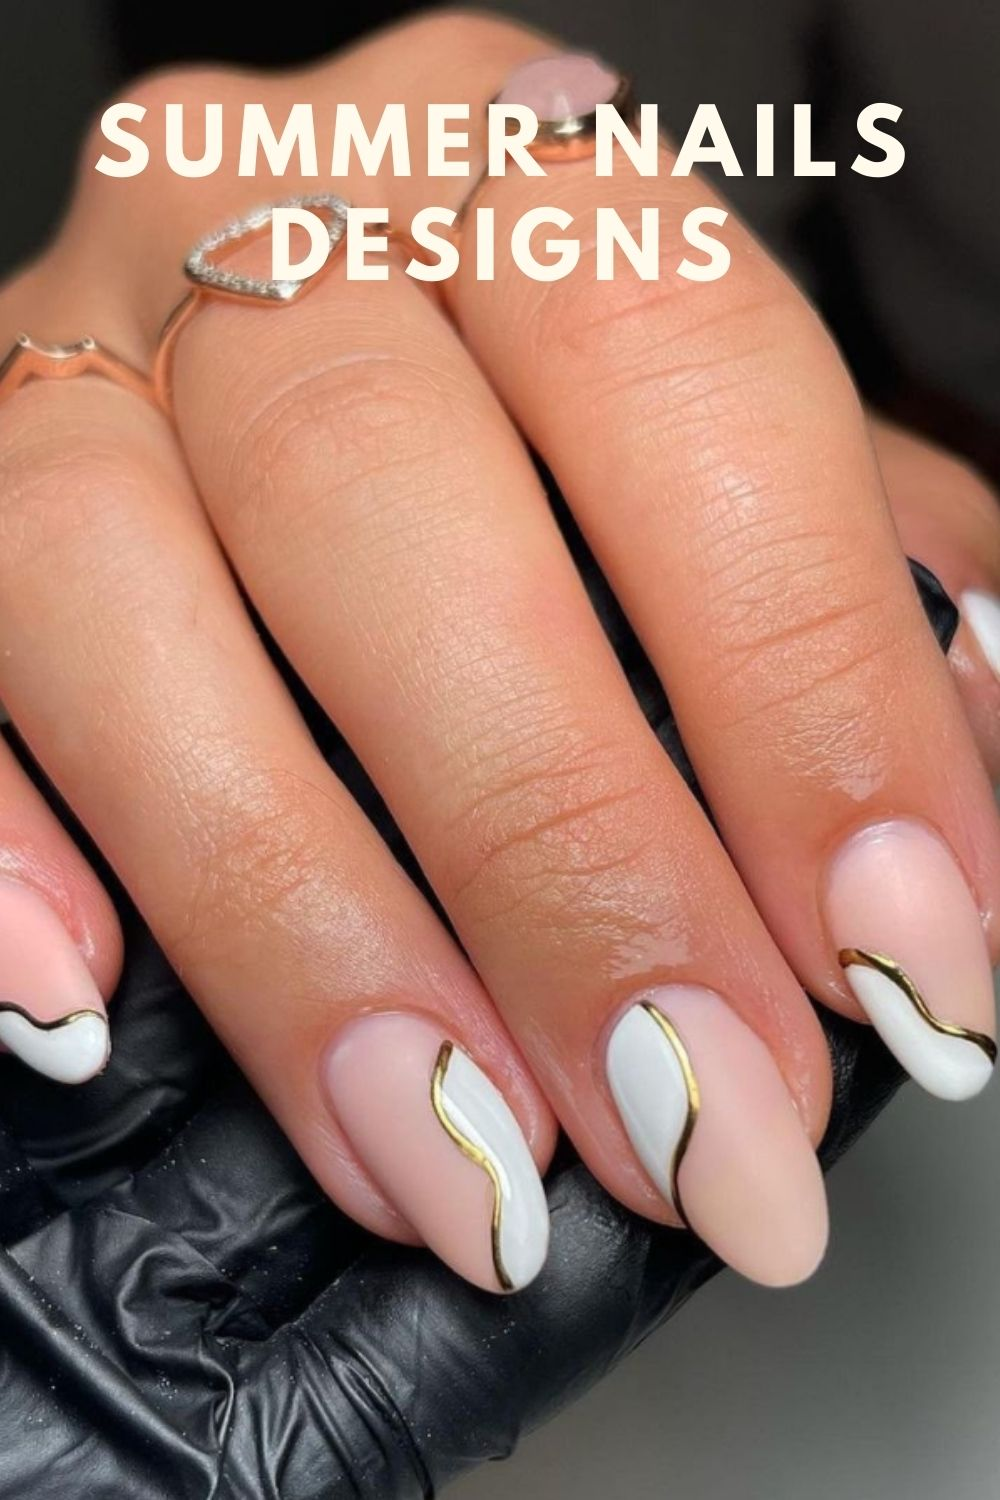 Classy white and pink almond nail shape